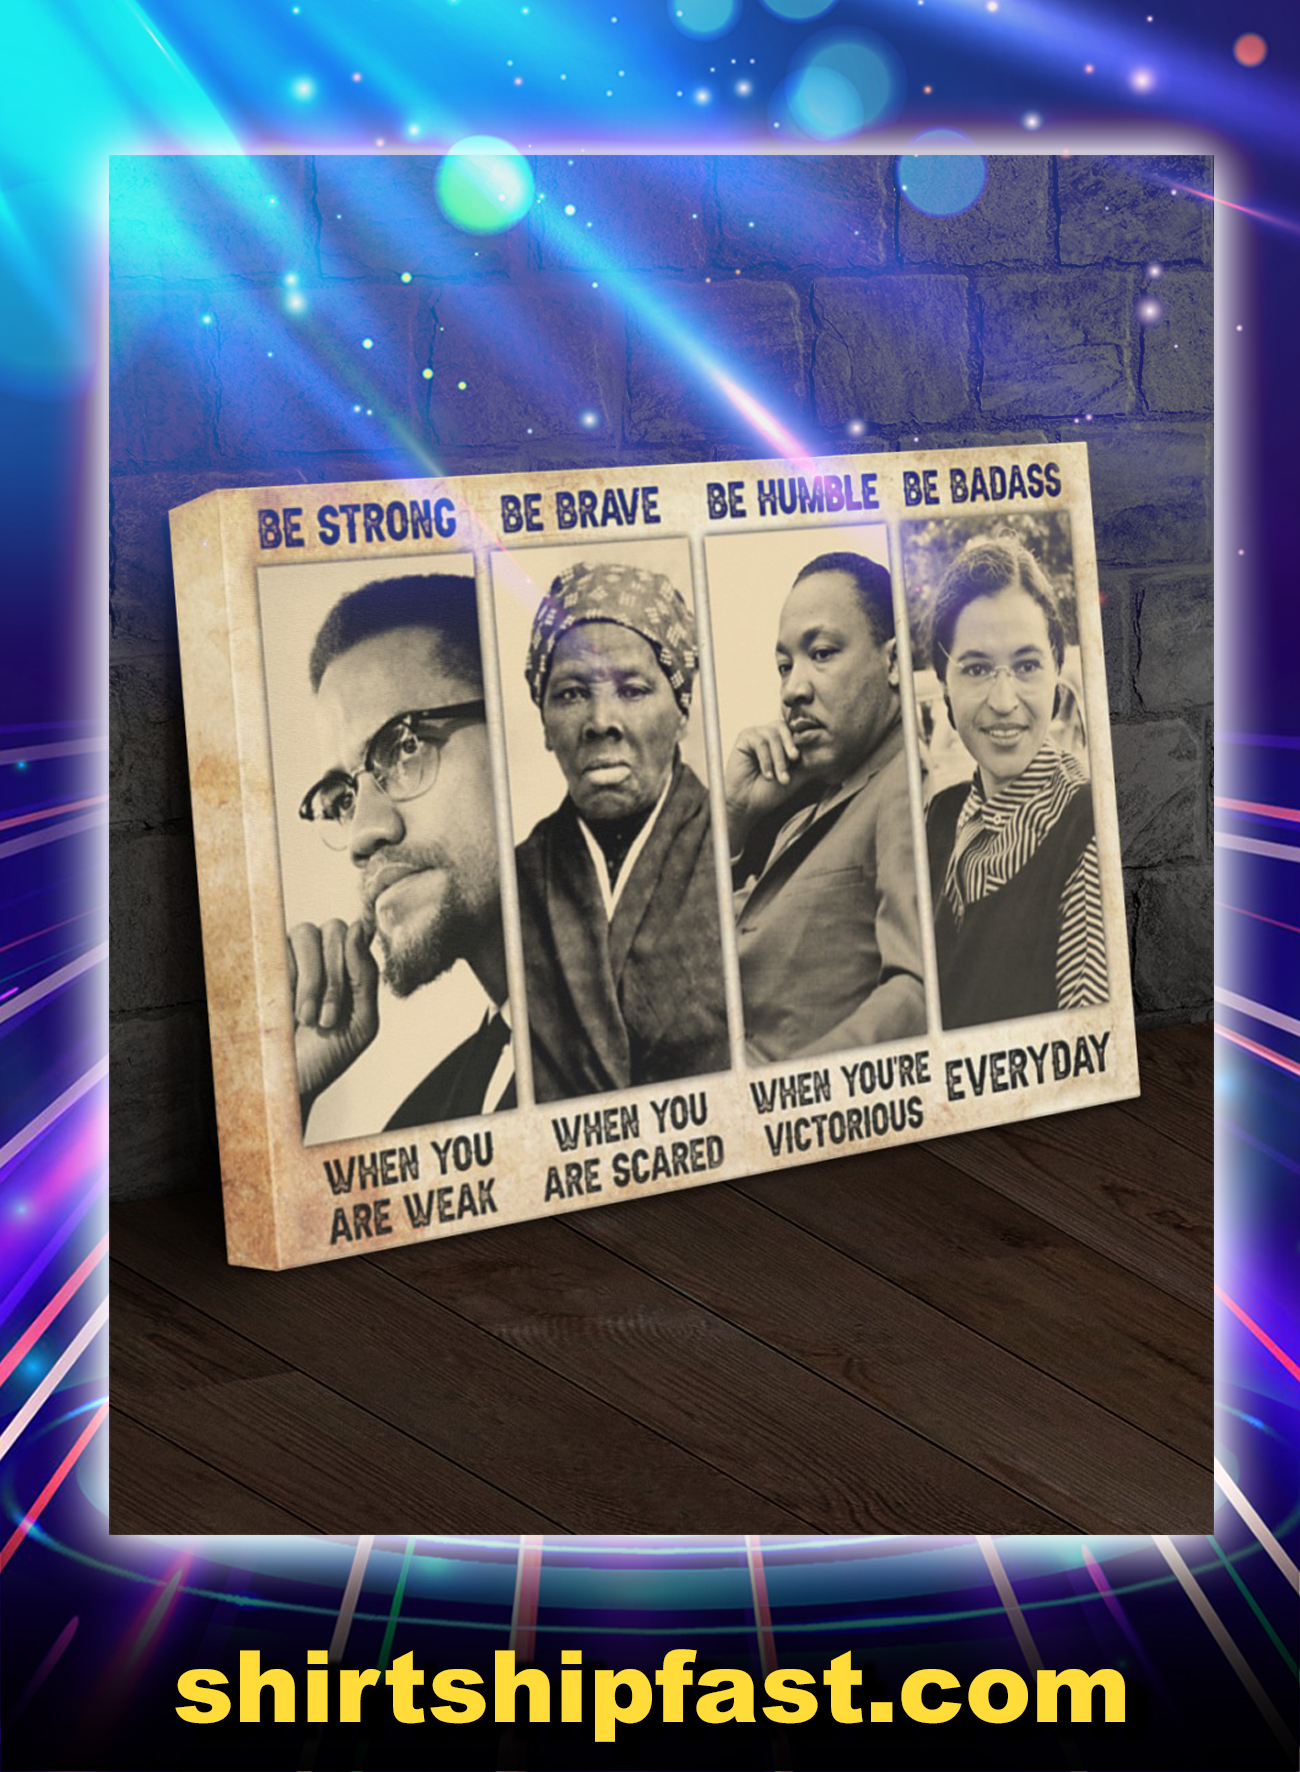 Malcolm X Harriet Tubman be strong be brave be humble be badass canvas prints - Picture 1